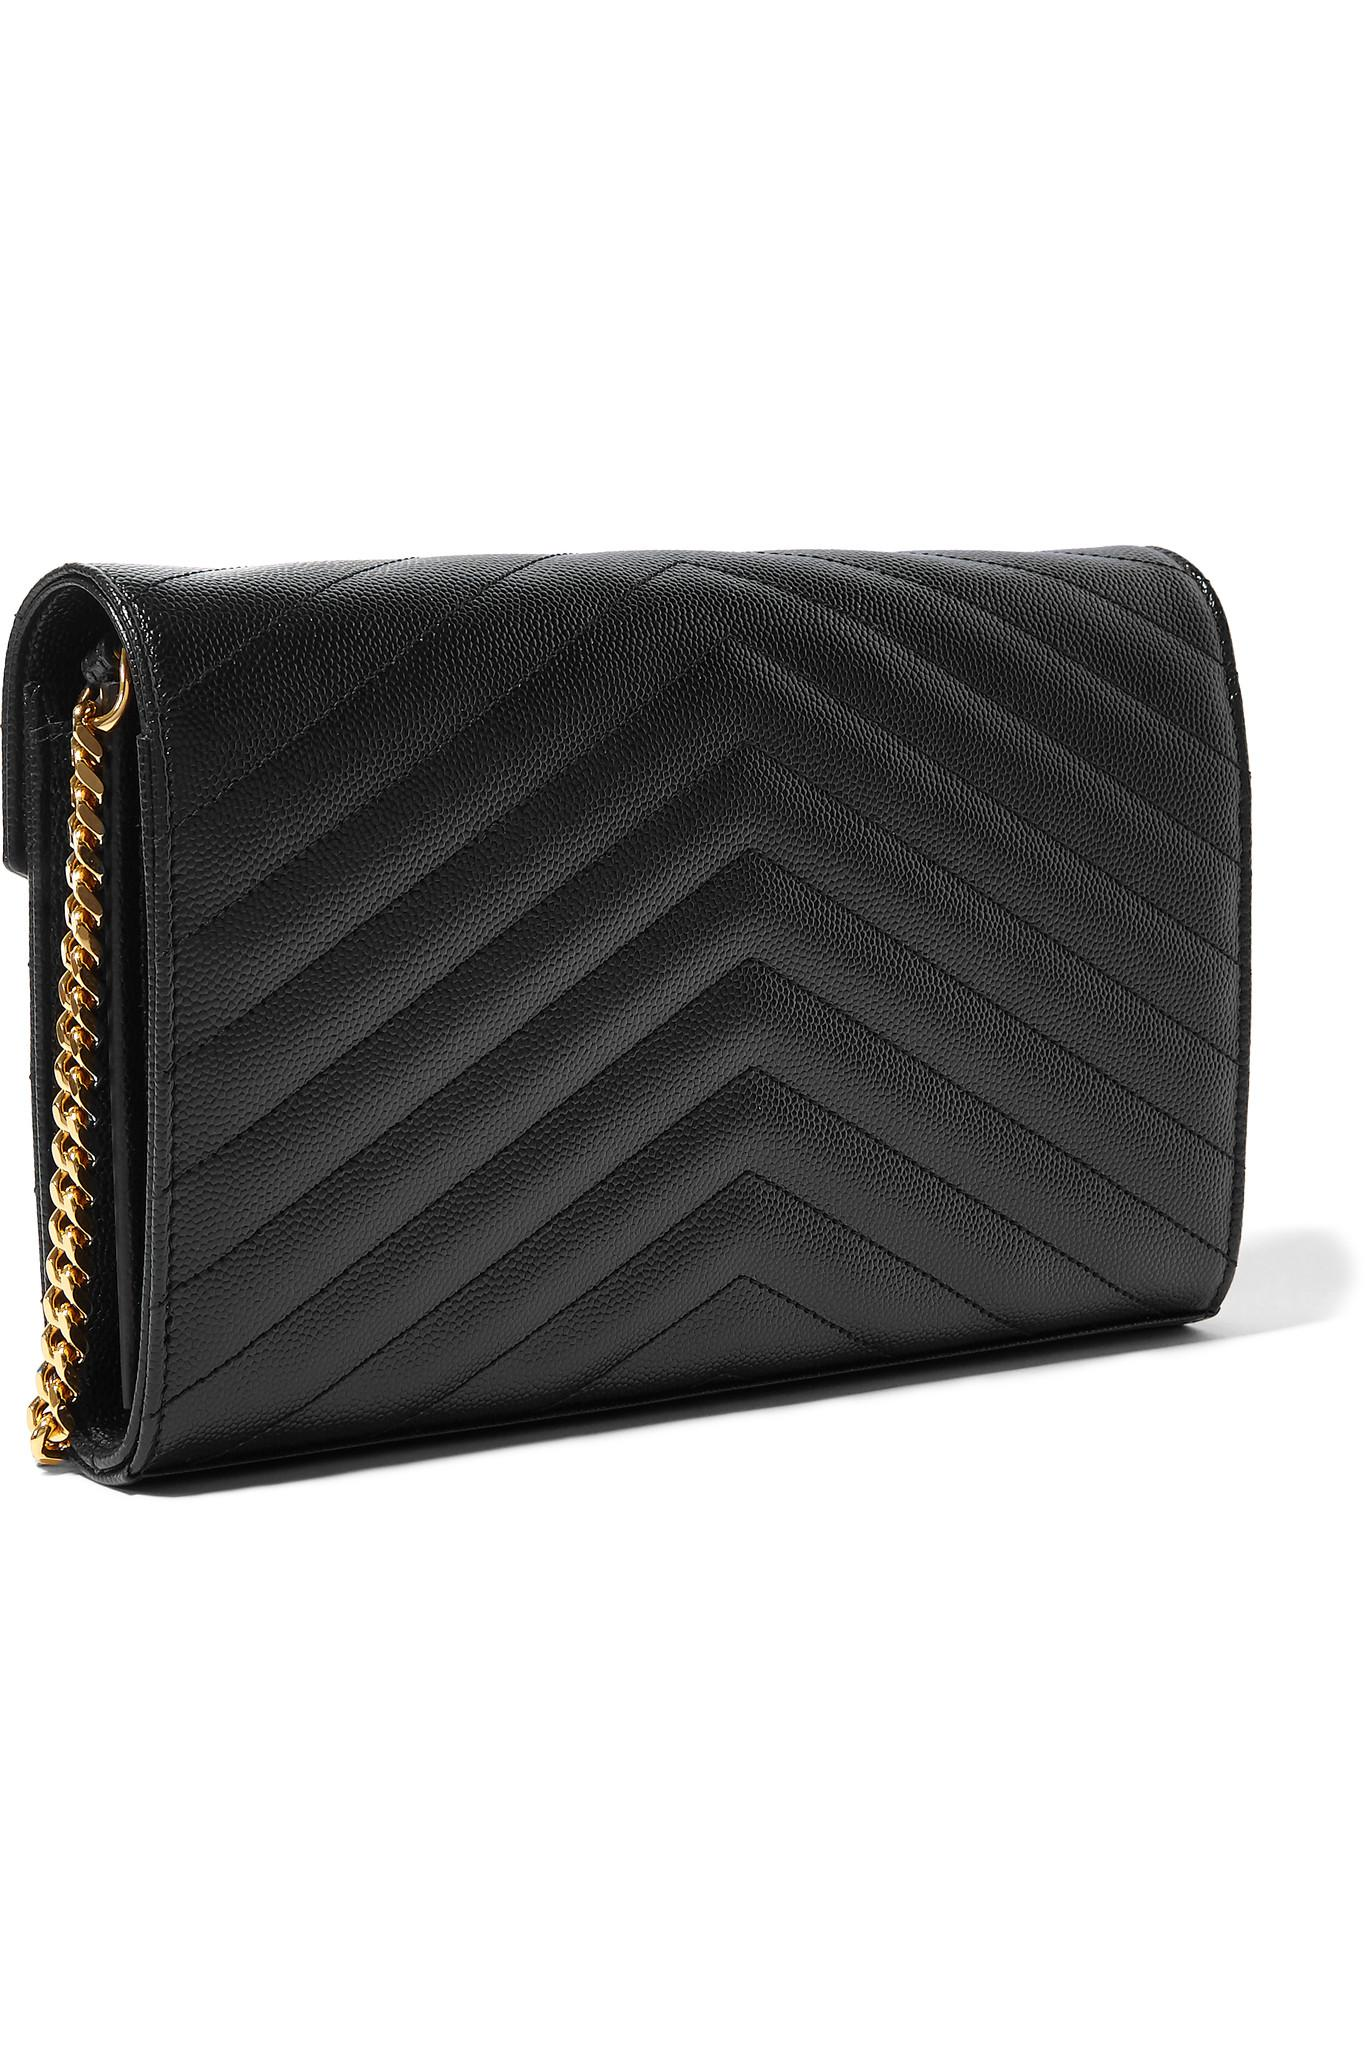 Lyst - Saint Laurent Monogramme Mini Quilted Textured-leather ... cffb9e8263121